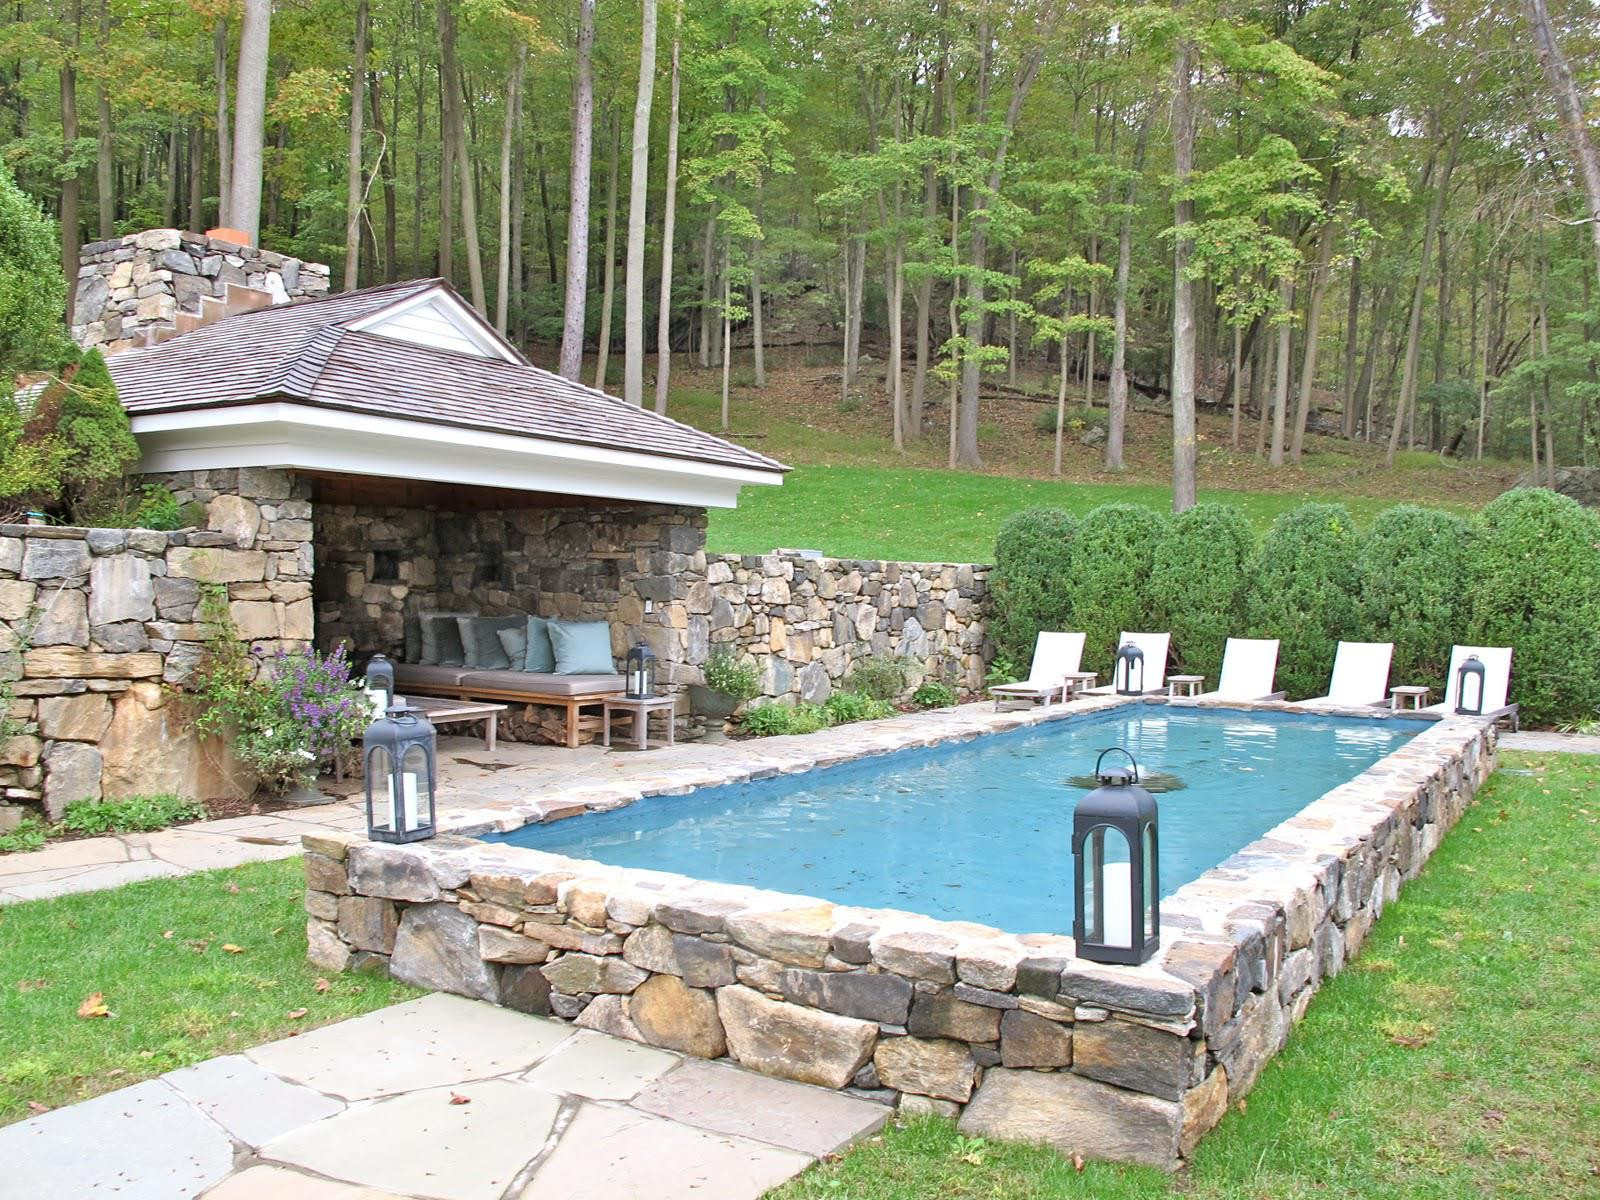 Best ideas about Semi Inground Pool Kits . Save or Pin Small Semi Inground Pool Kits – Decor References Now.